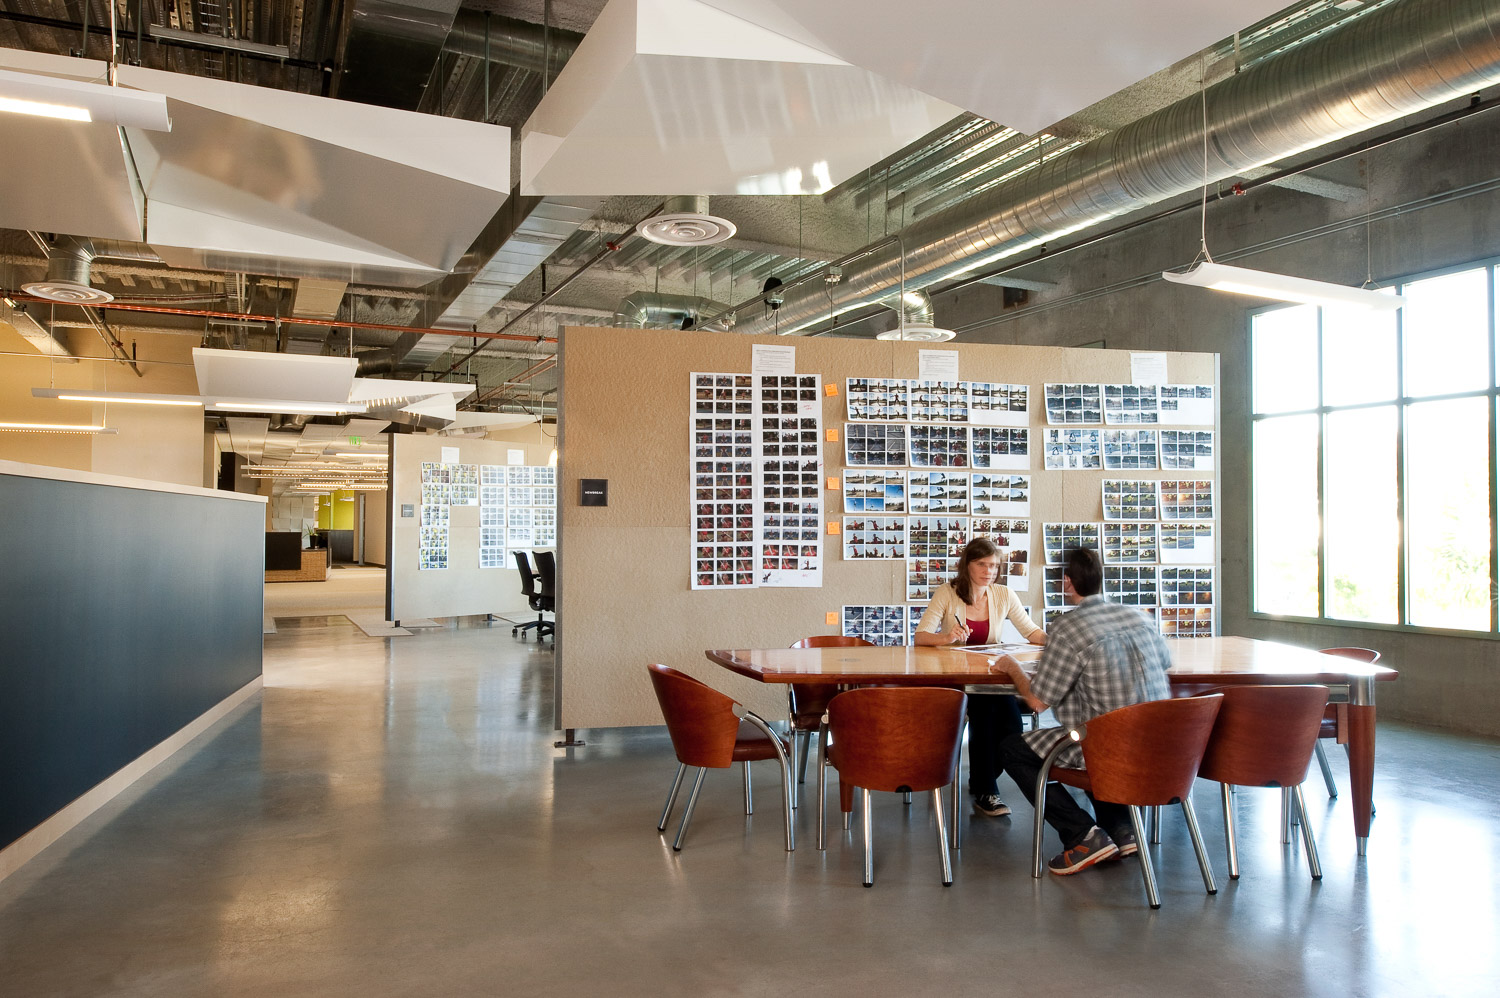 Vitro Ad Agency interior meeting space, interior architectural photography, commercial architecture